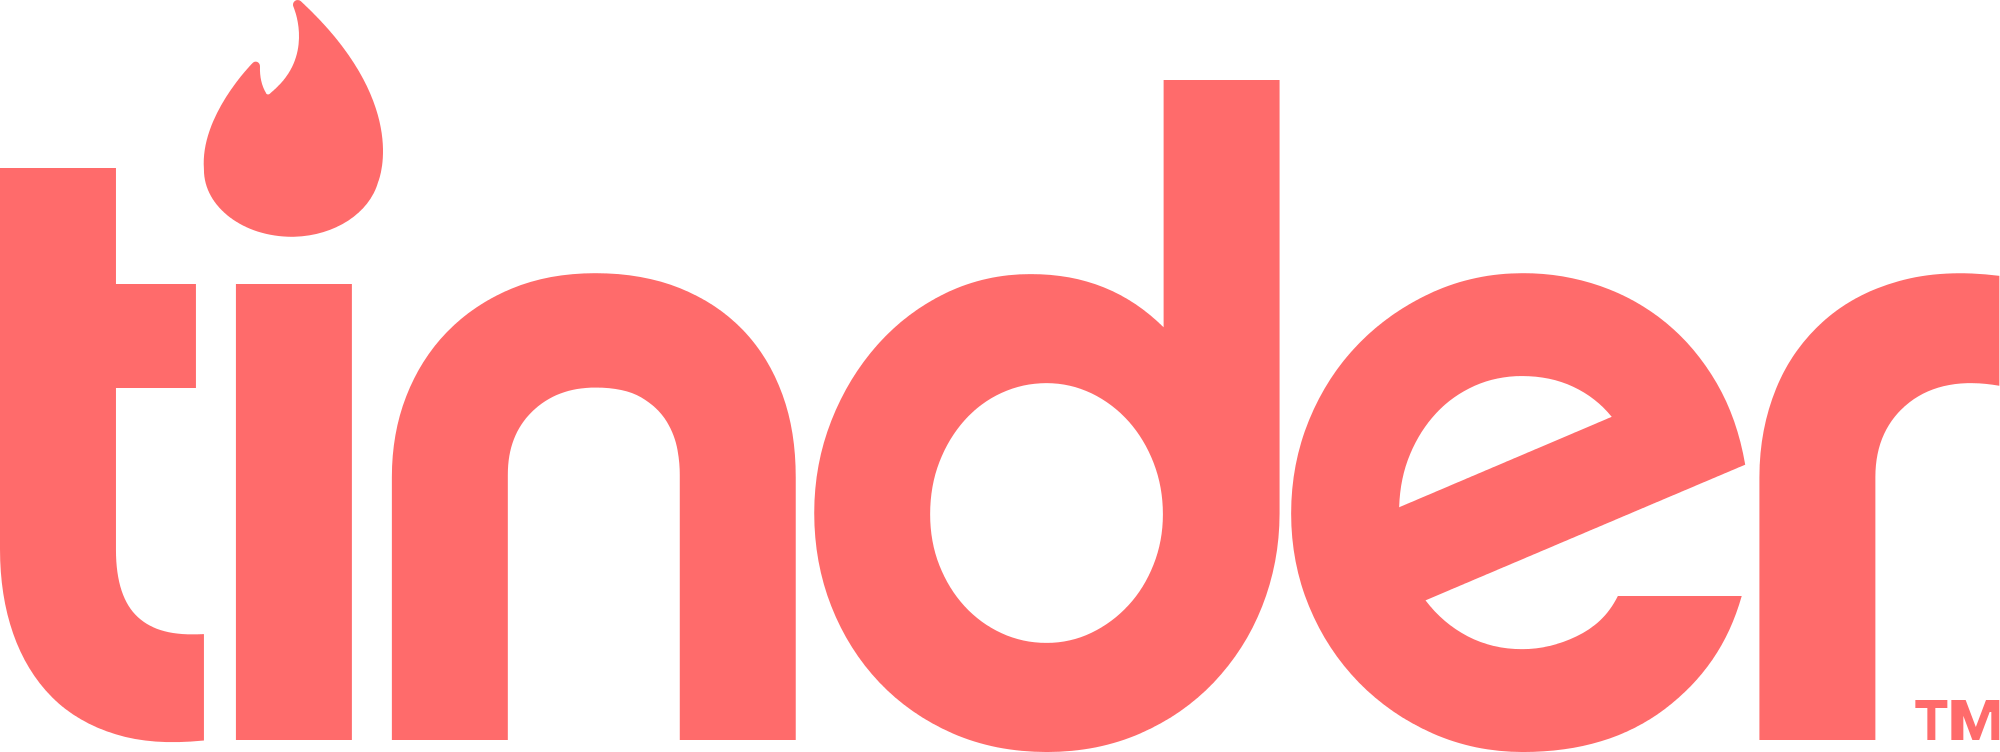 Tinder renew their logo with